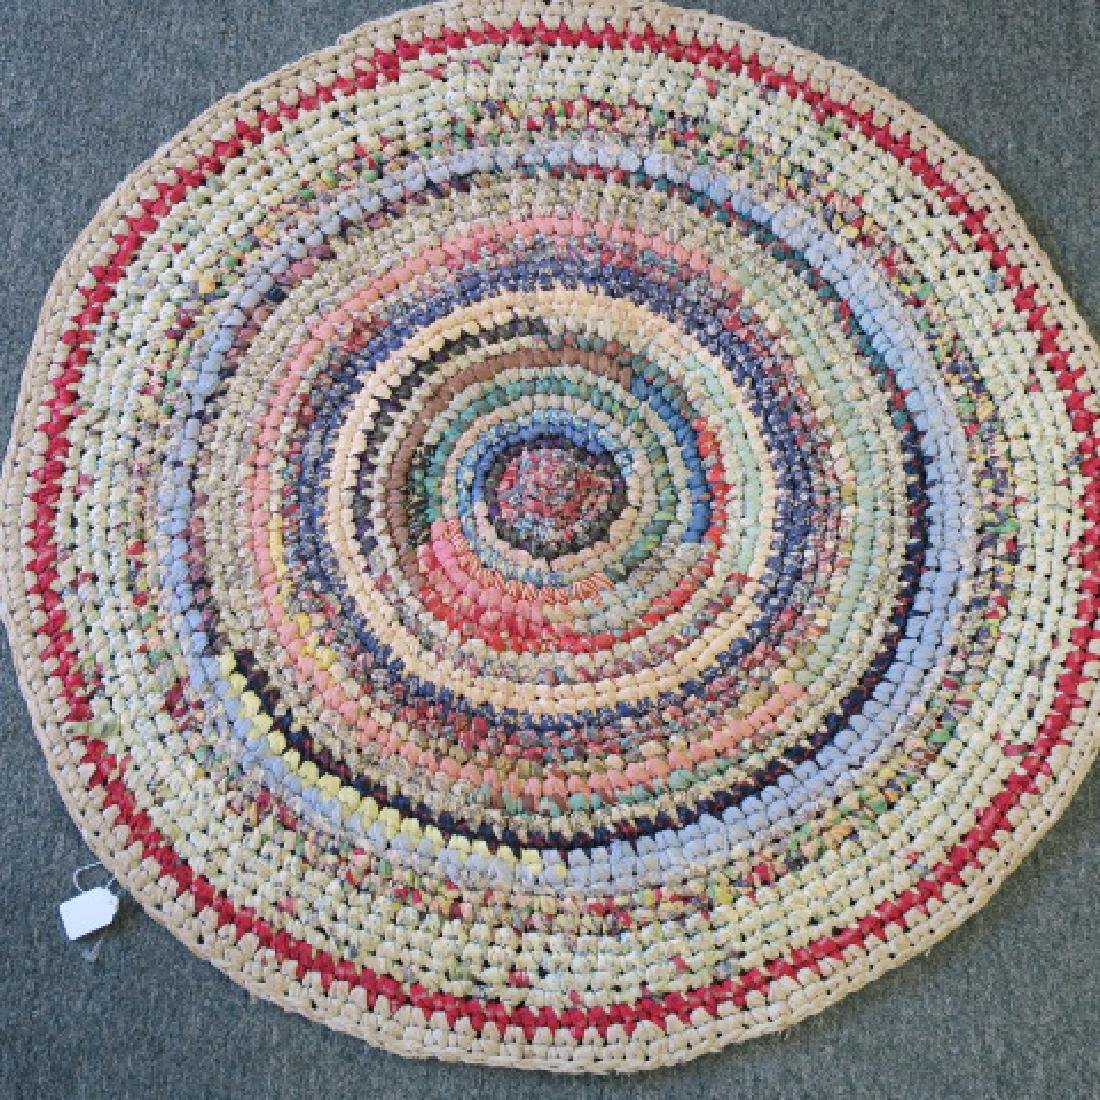 Two Round Braided Rag Area Rugs: - 2